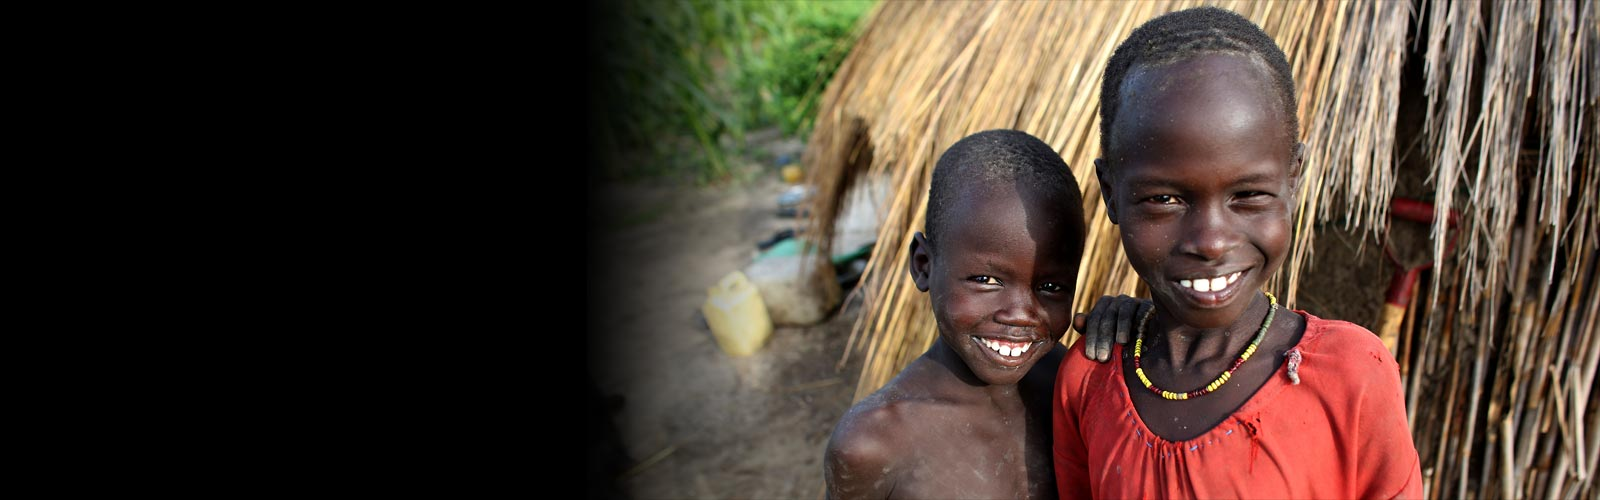 Two smiling children in South Sudan